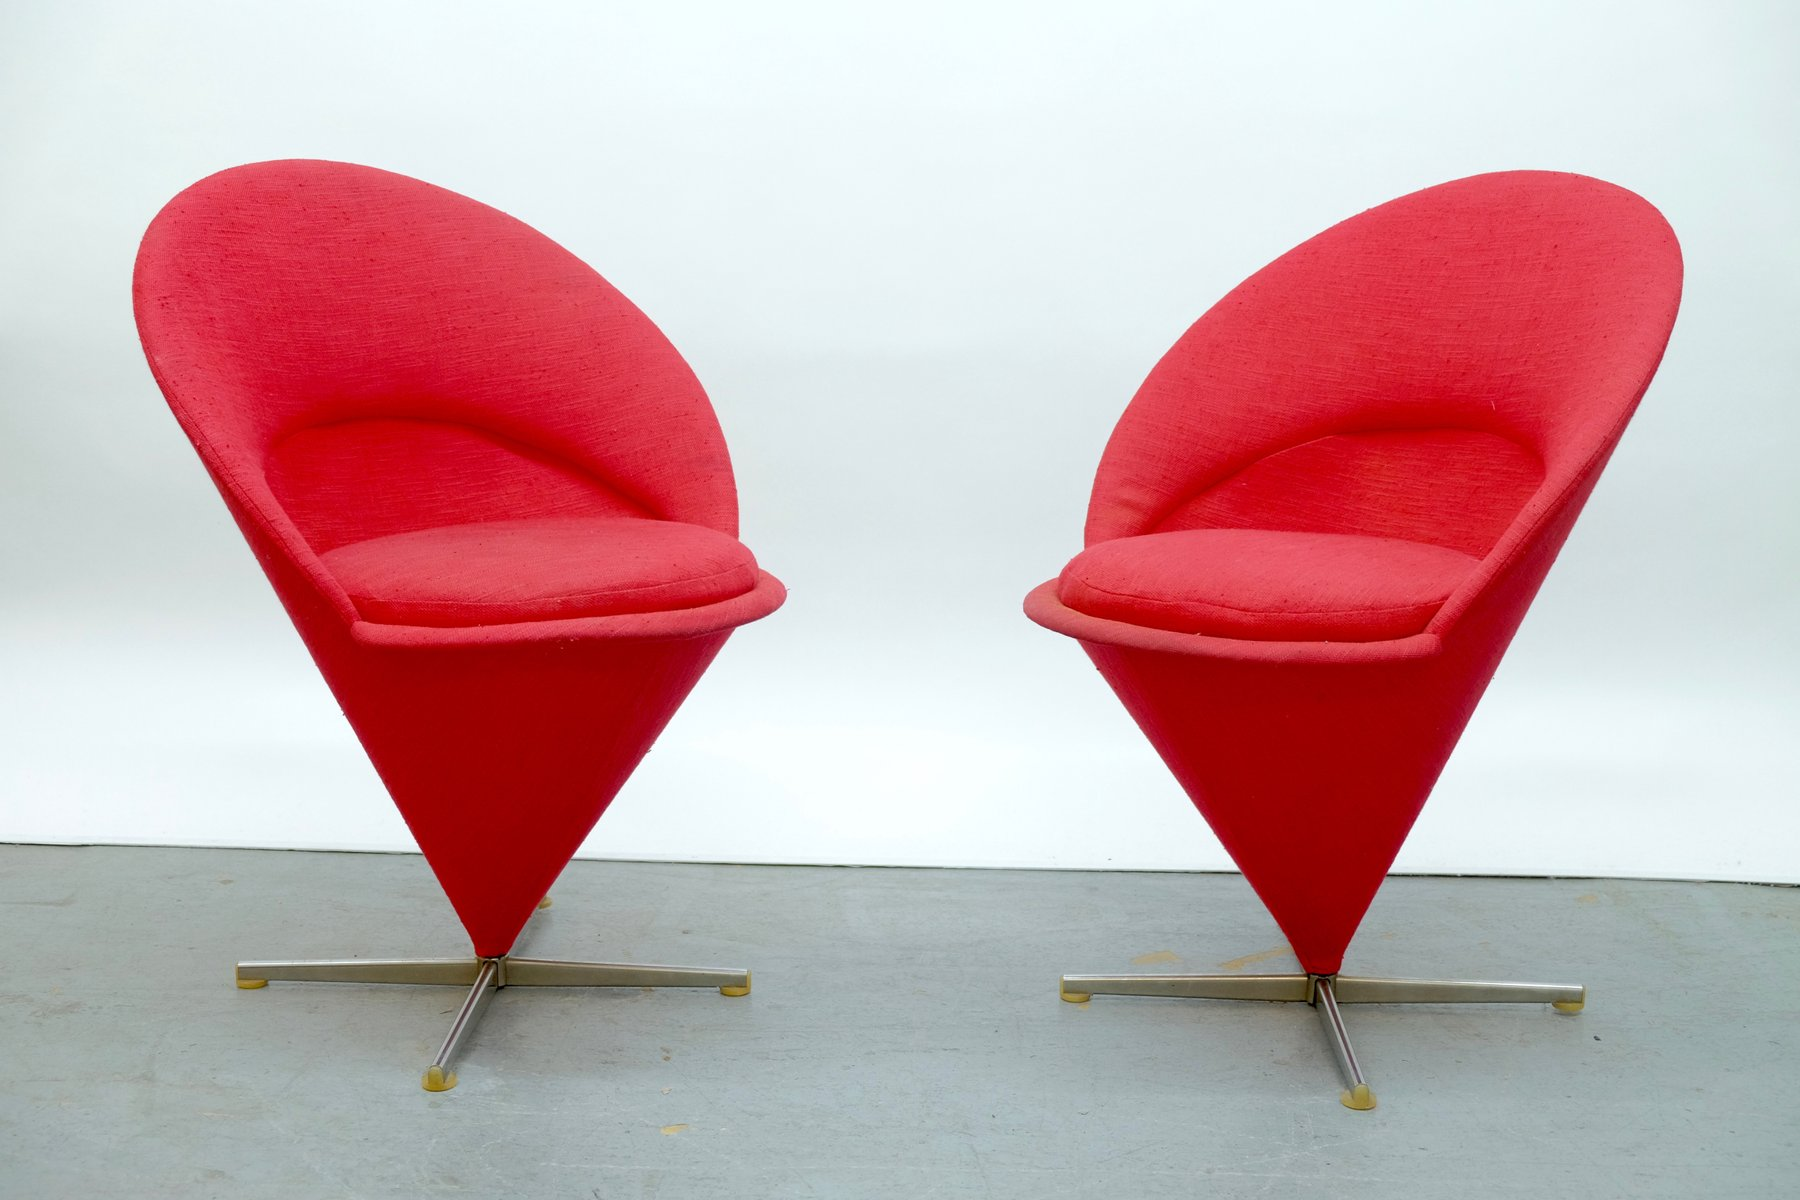 Cone K1 Chairs By Verner Panton For Plus Linje 1958 Set Of 2 For Sale At Pamono